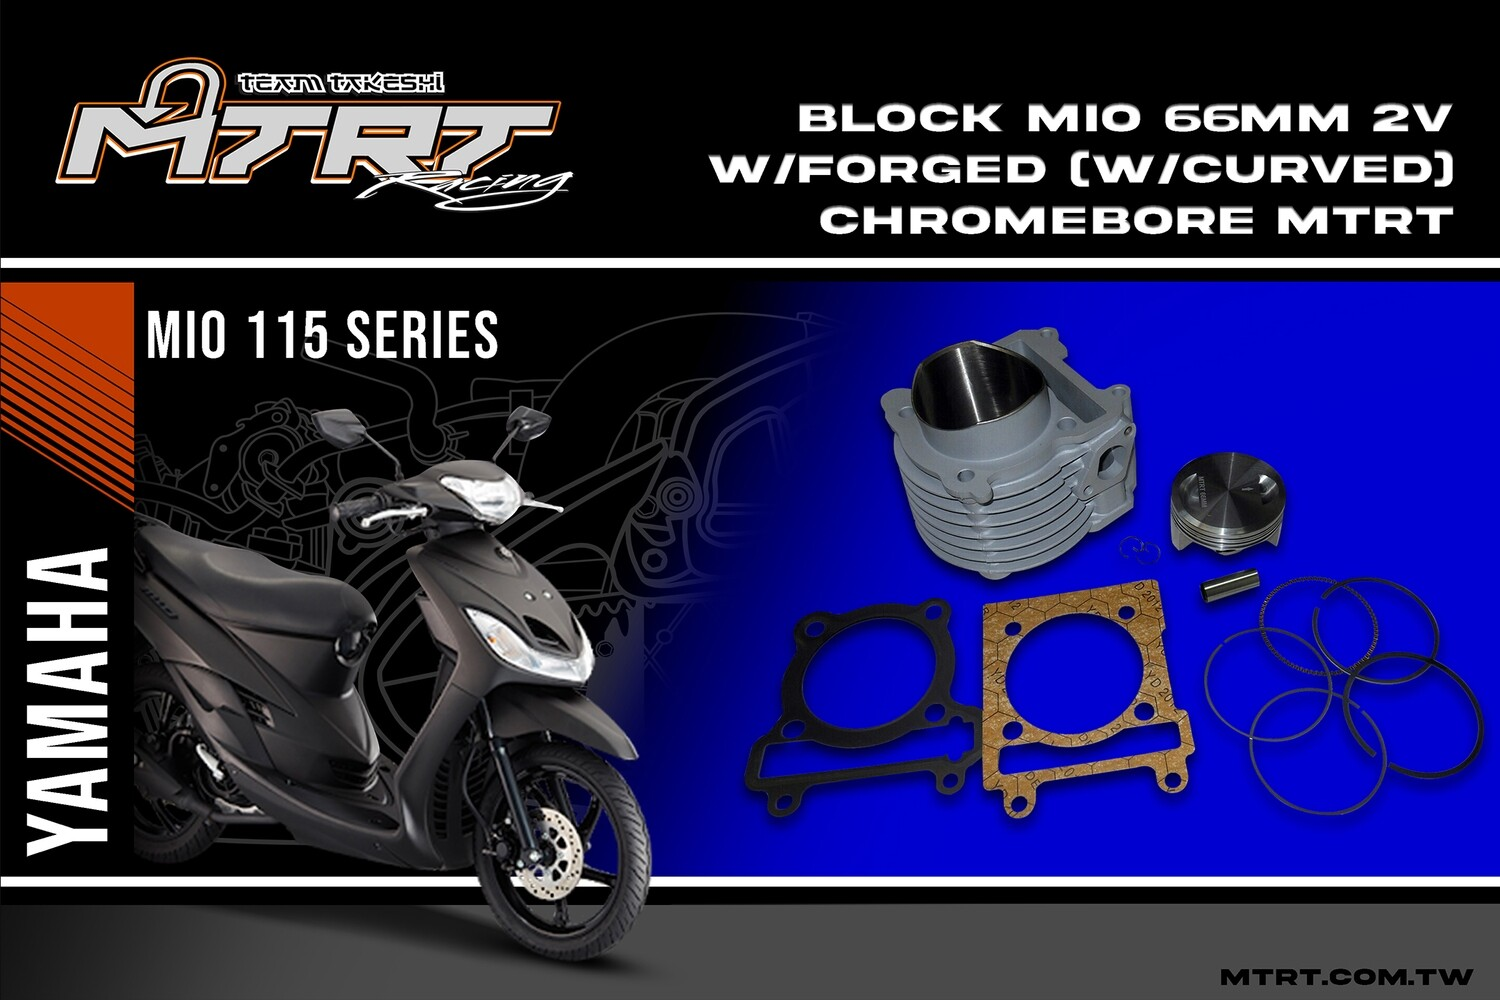 BLOCK MIO 66MM 2V w/forged (Curved) chromebore  MTRT